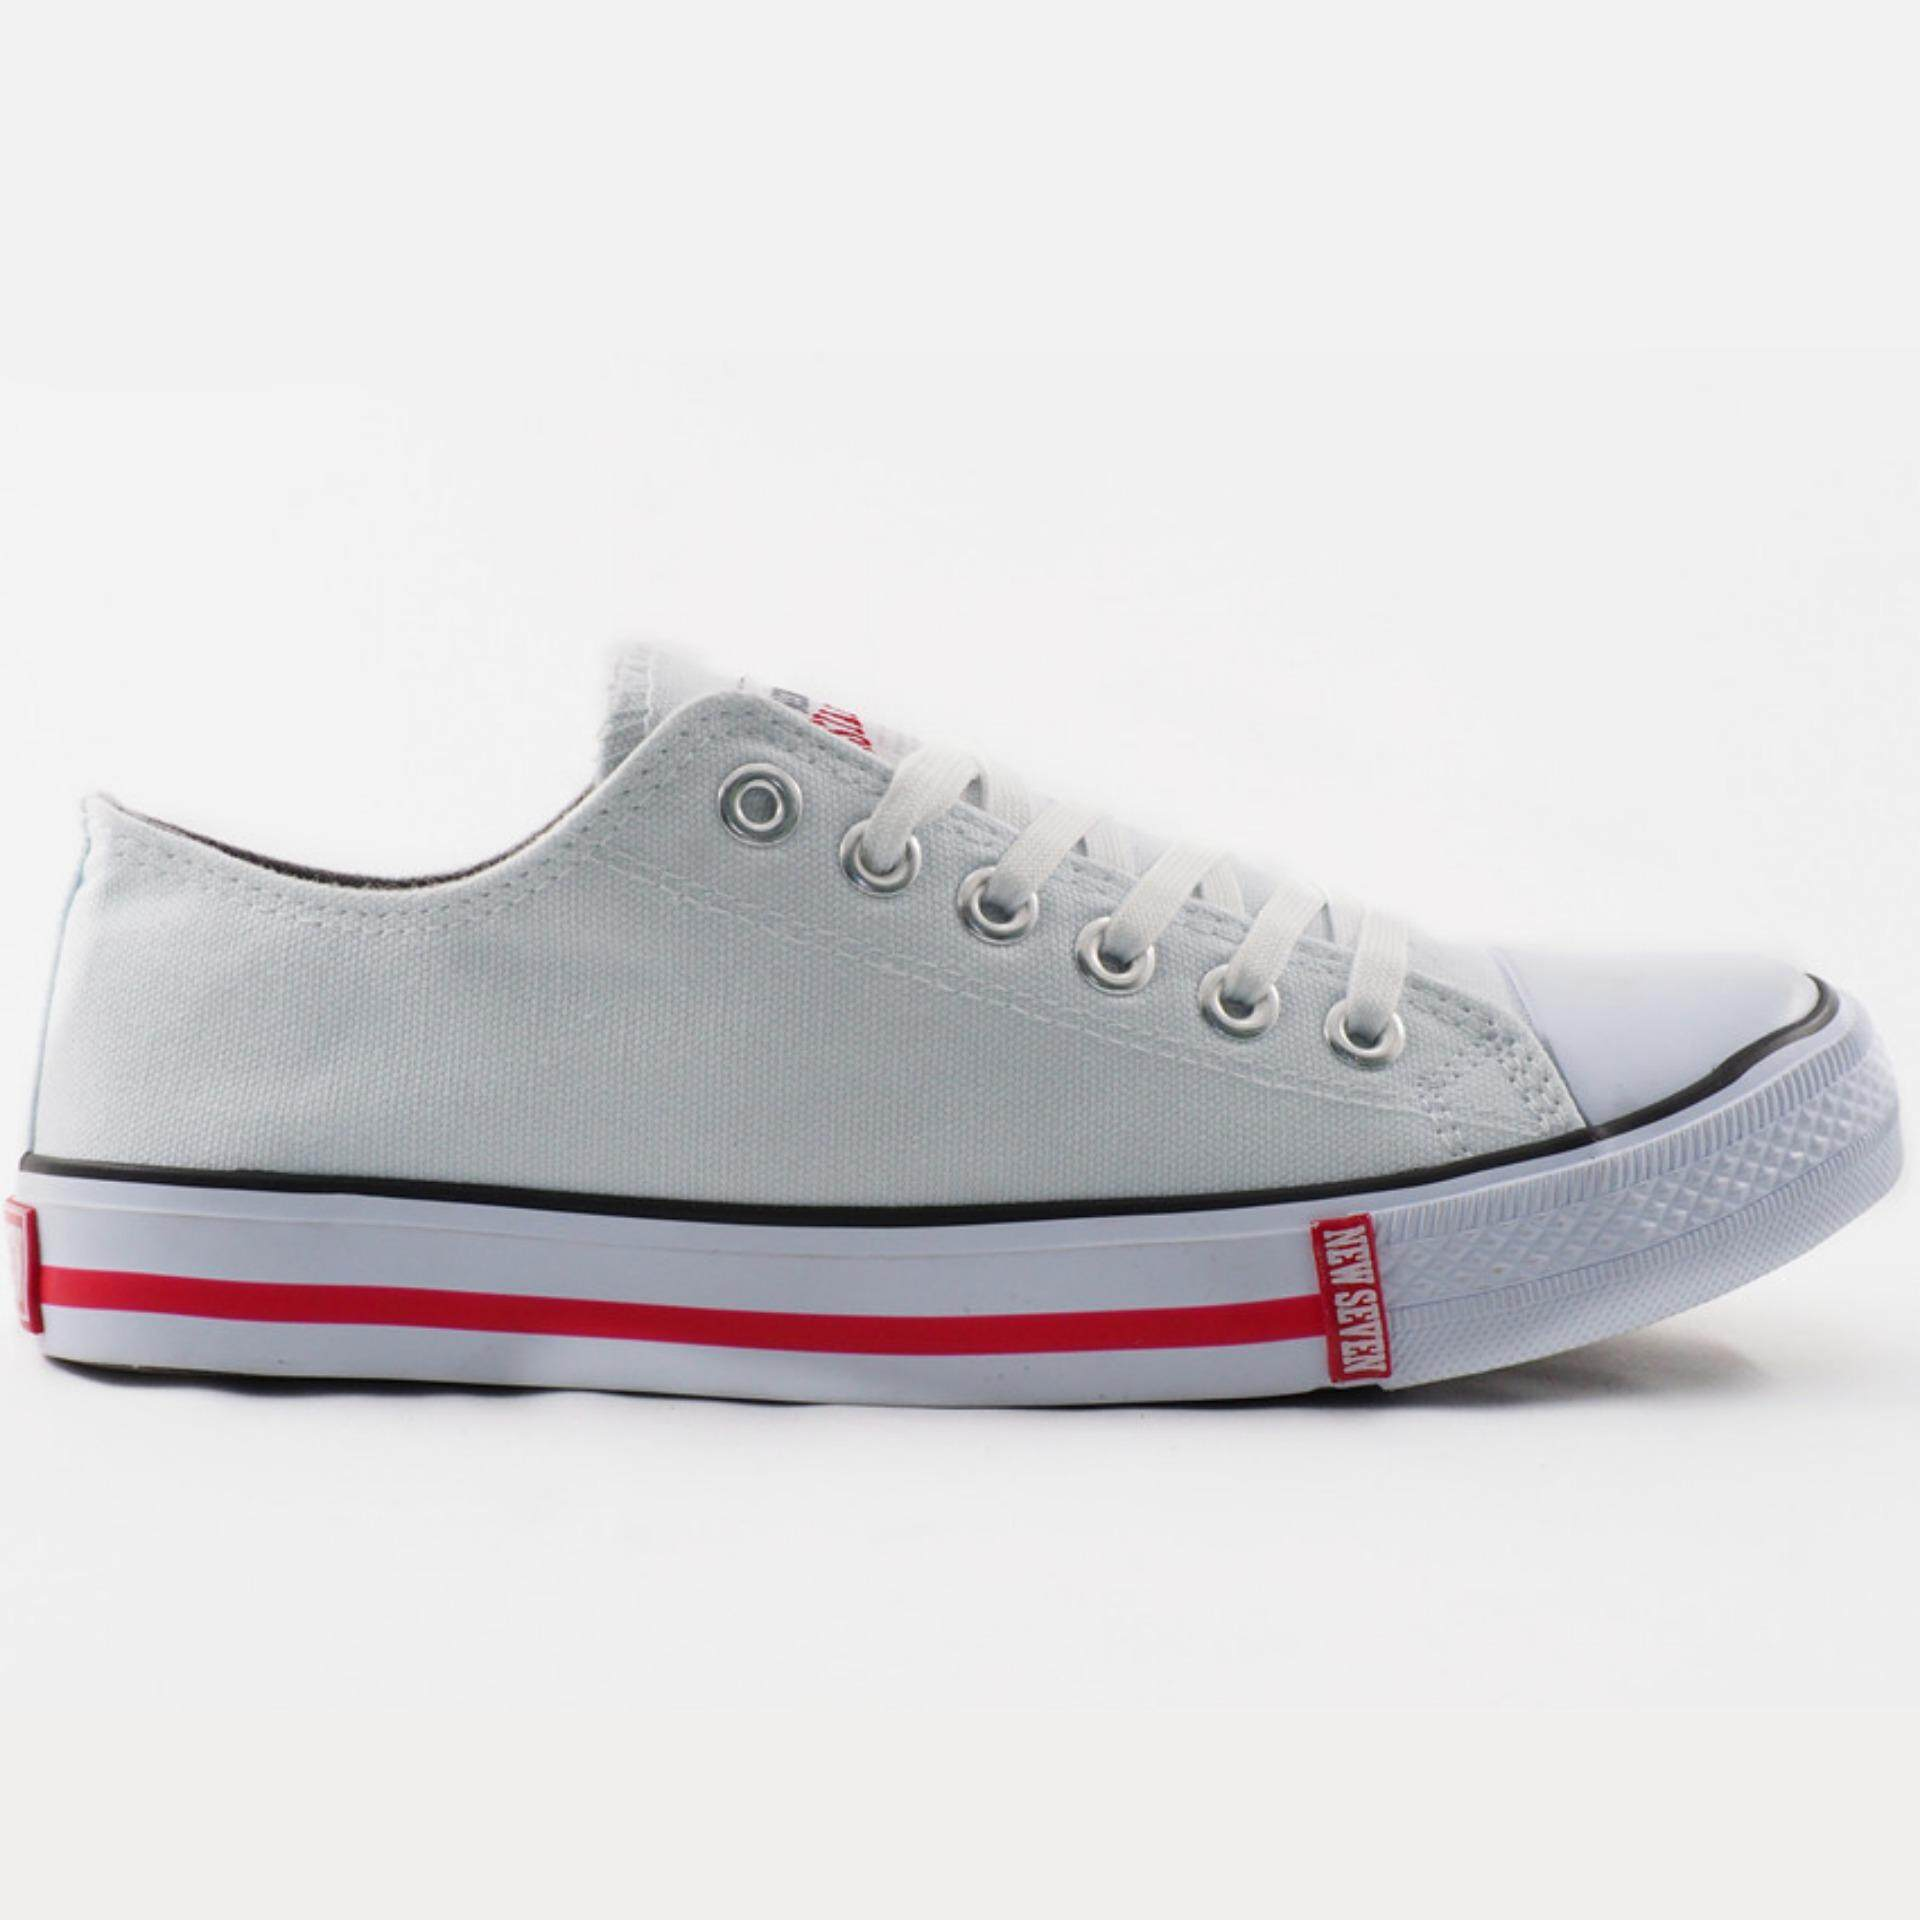 New Seven School Shoes White - WR268